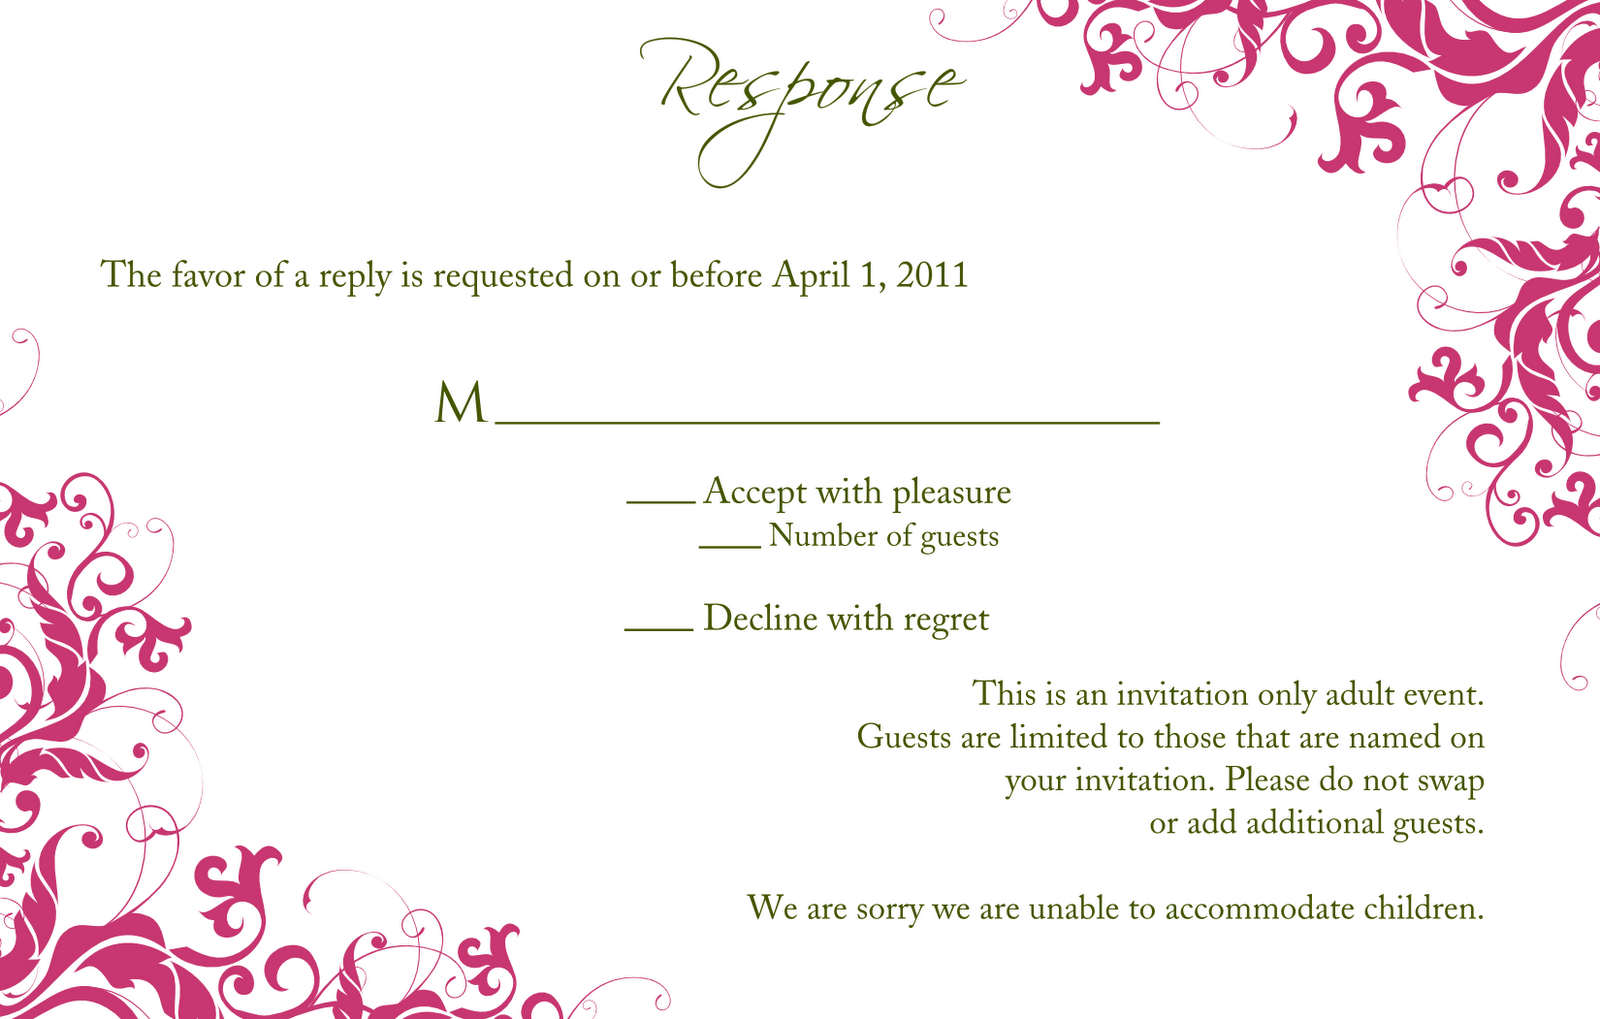 rsvp cards for weddings templates - wedding invitation wording wedding invitation and rsvp